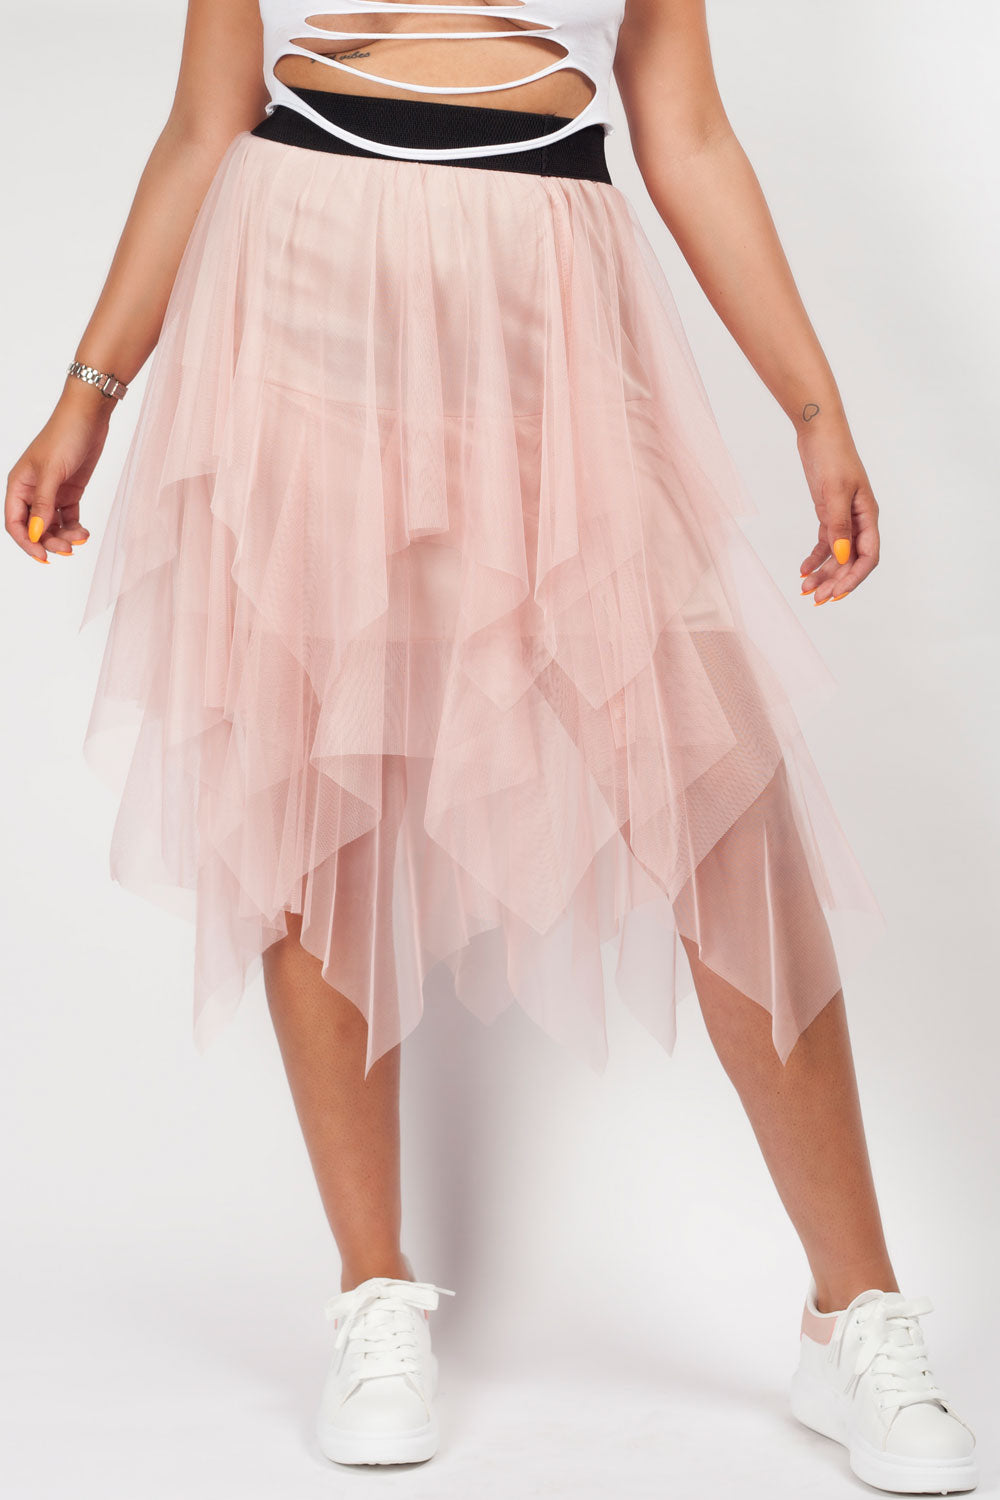 pink mesh high waisted midi skirt festival outfit